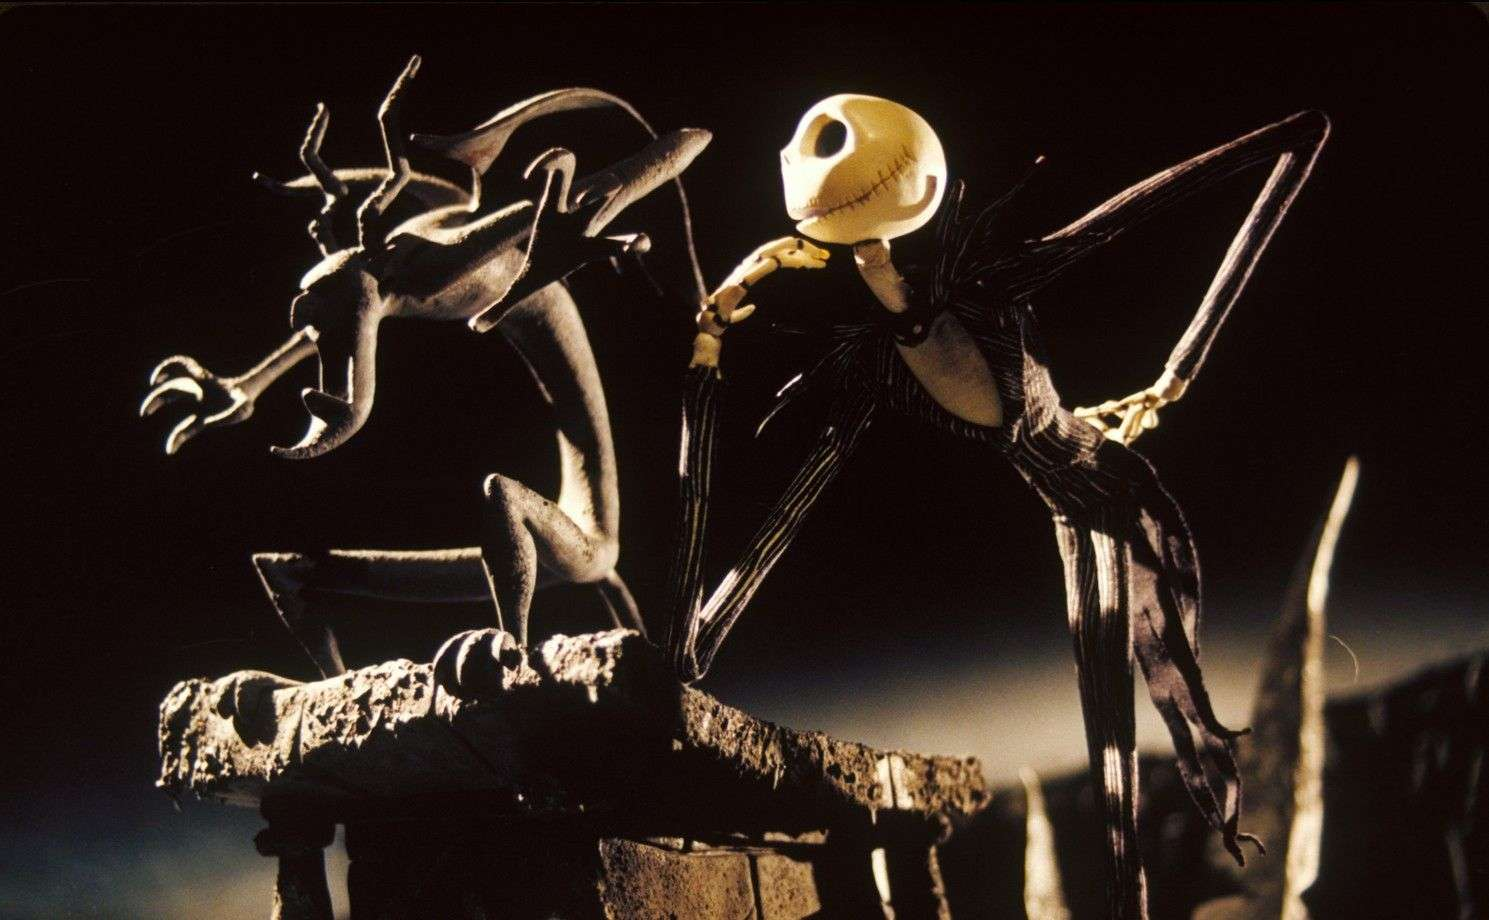 The nightmare before christmas desney pictures